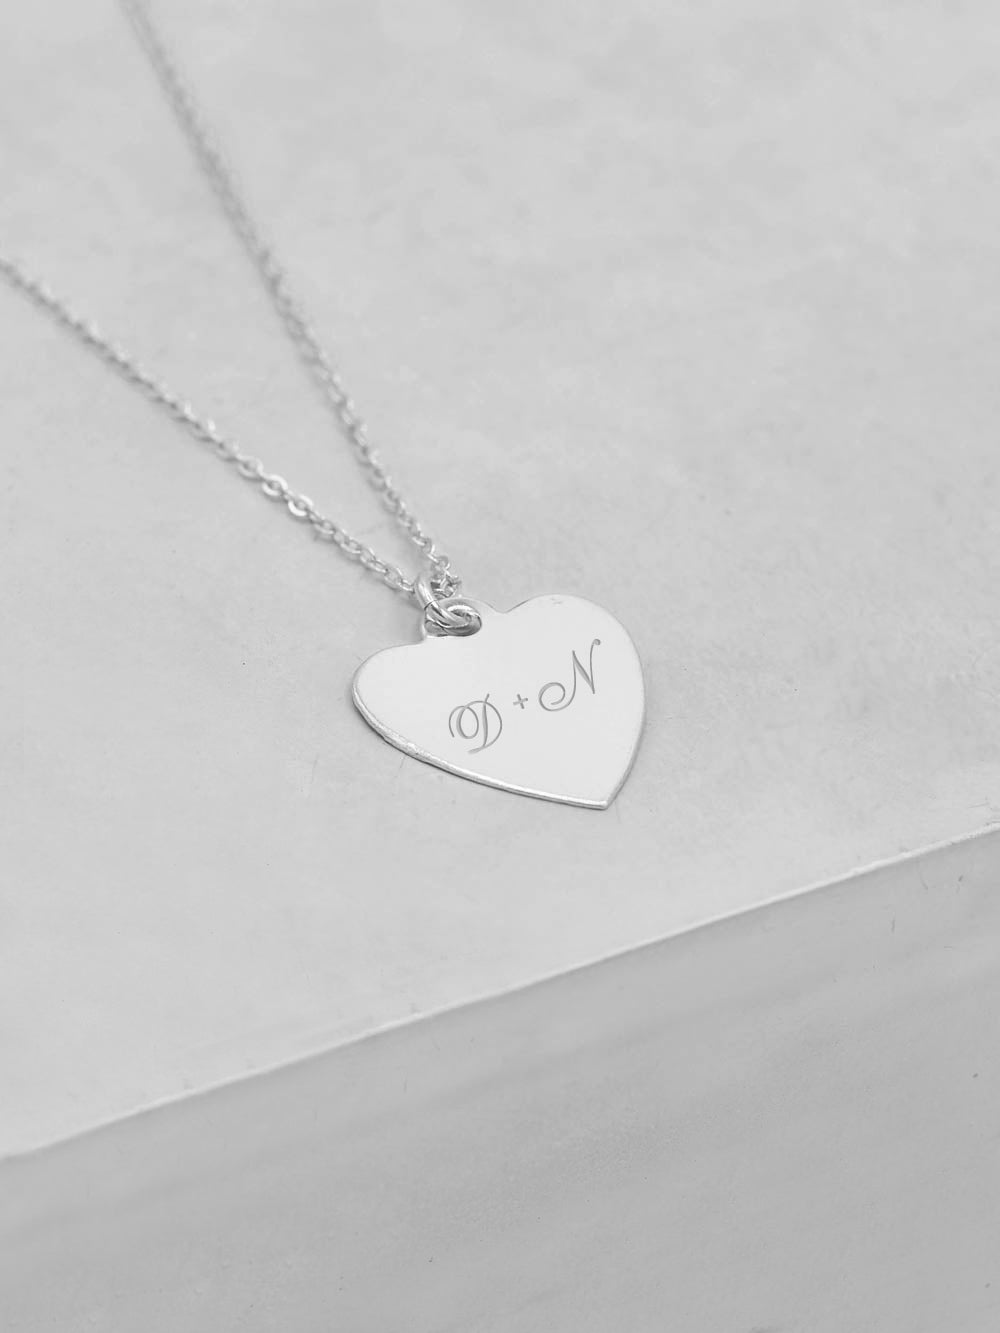 Heart Engraved Silver Necklace by The Faint Hearted Jewelry